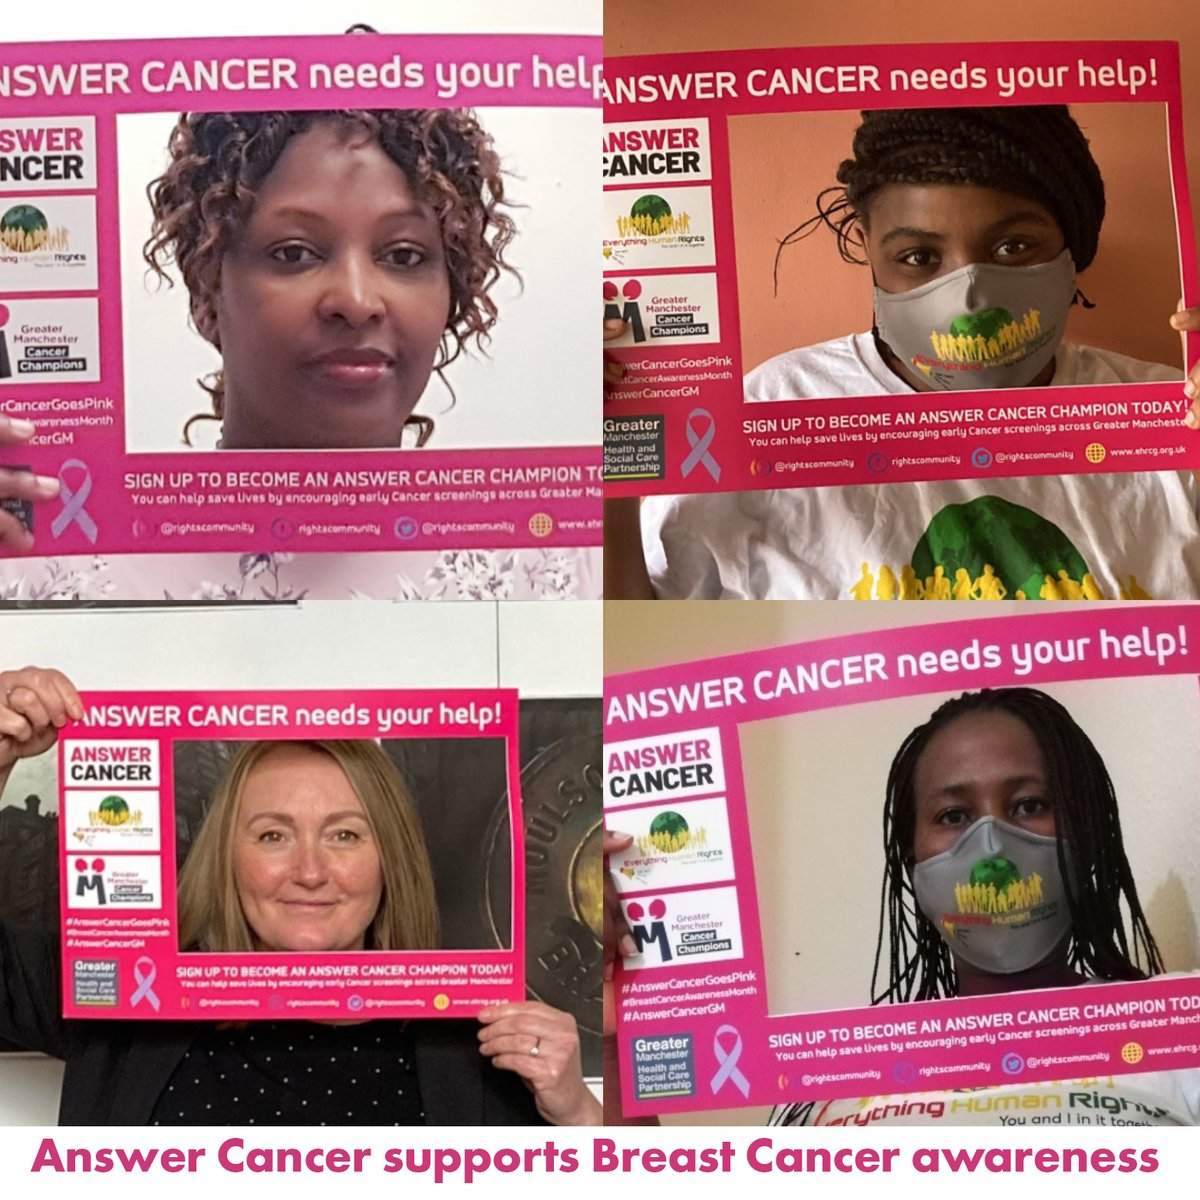 Congratulations to @RightsCommunity who won our banner making competition for #BreastCancerAwarenessMonth! Here is there winning entry. Thanks to everyone who took part. #AnswerCancerGoesPink